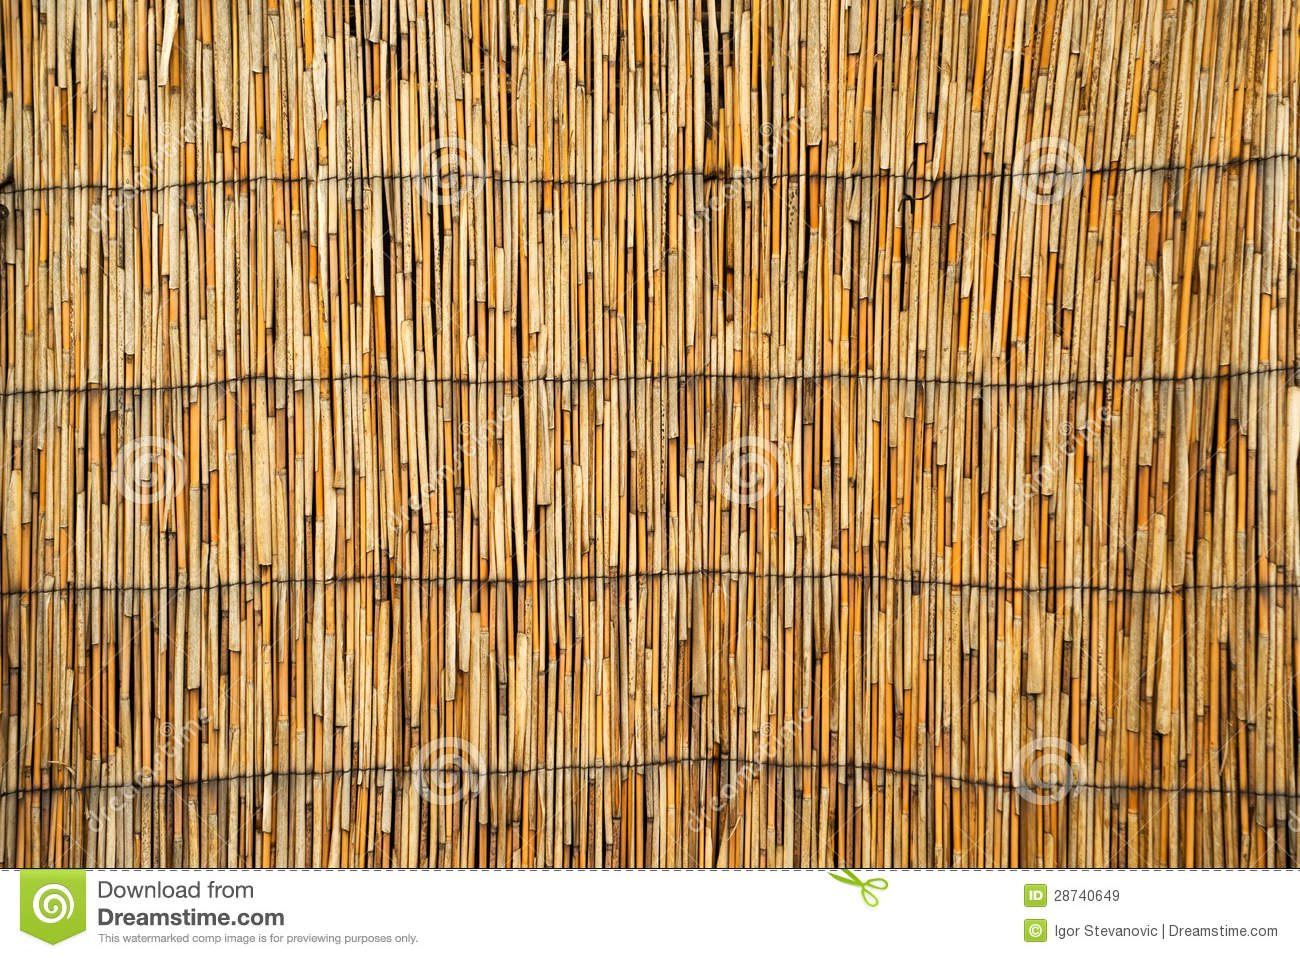 3d Roof Wallpaper Cane Roof Texture Stock Image Image Of Abstract Handmade